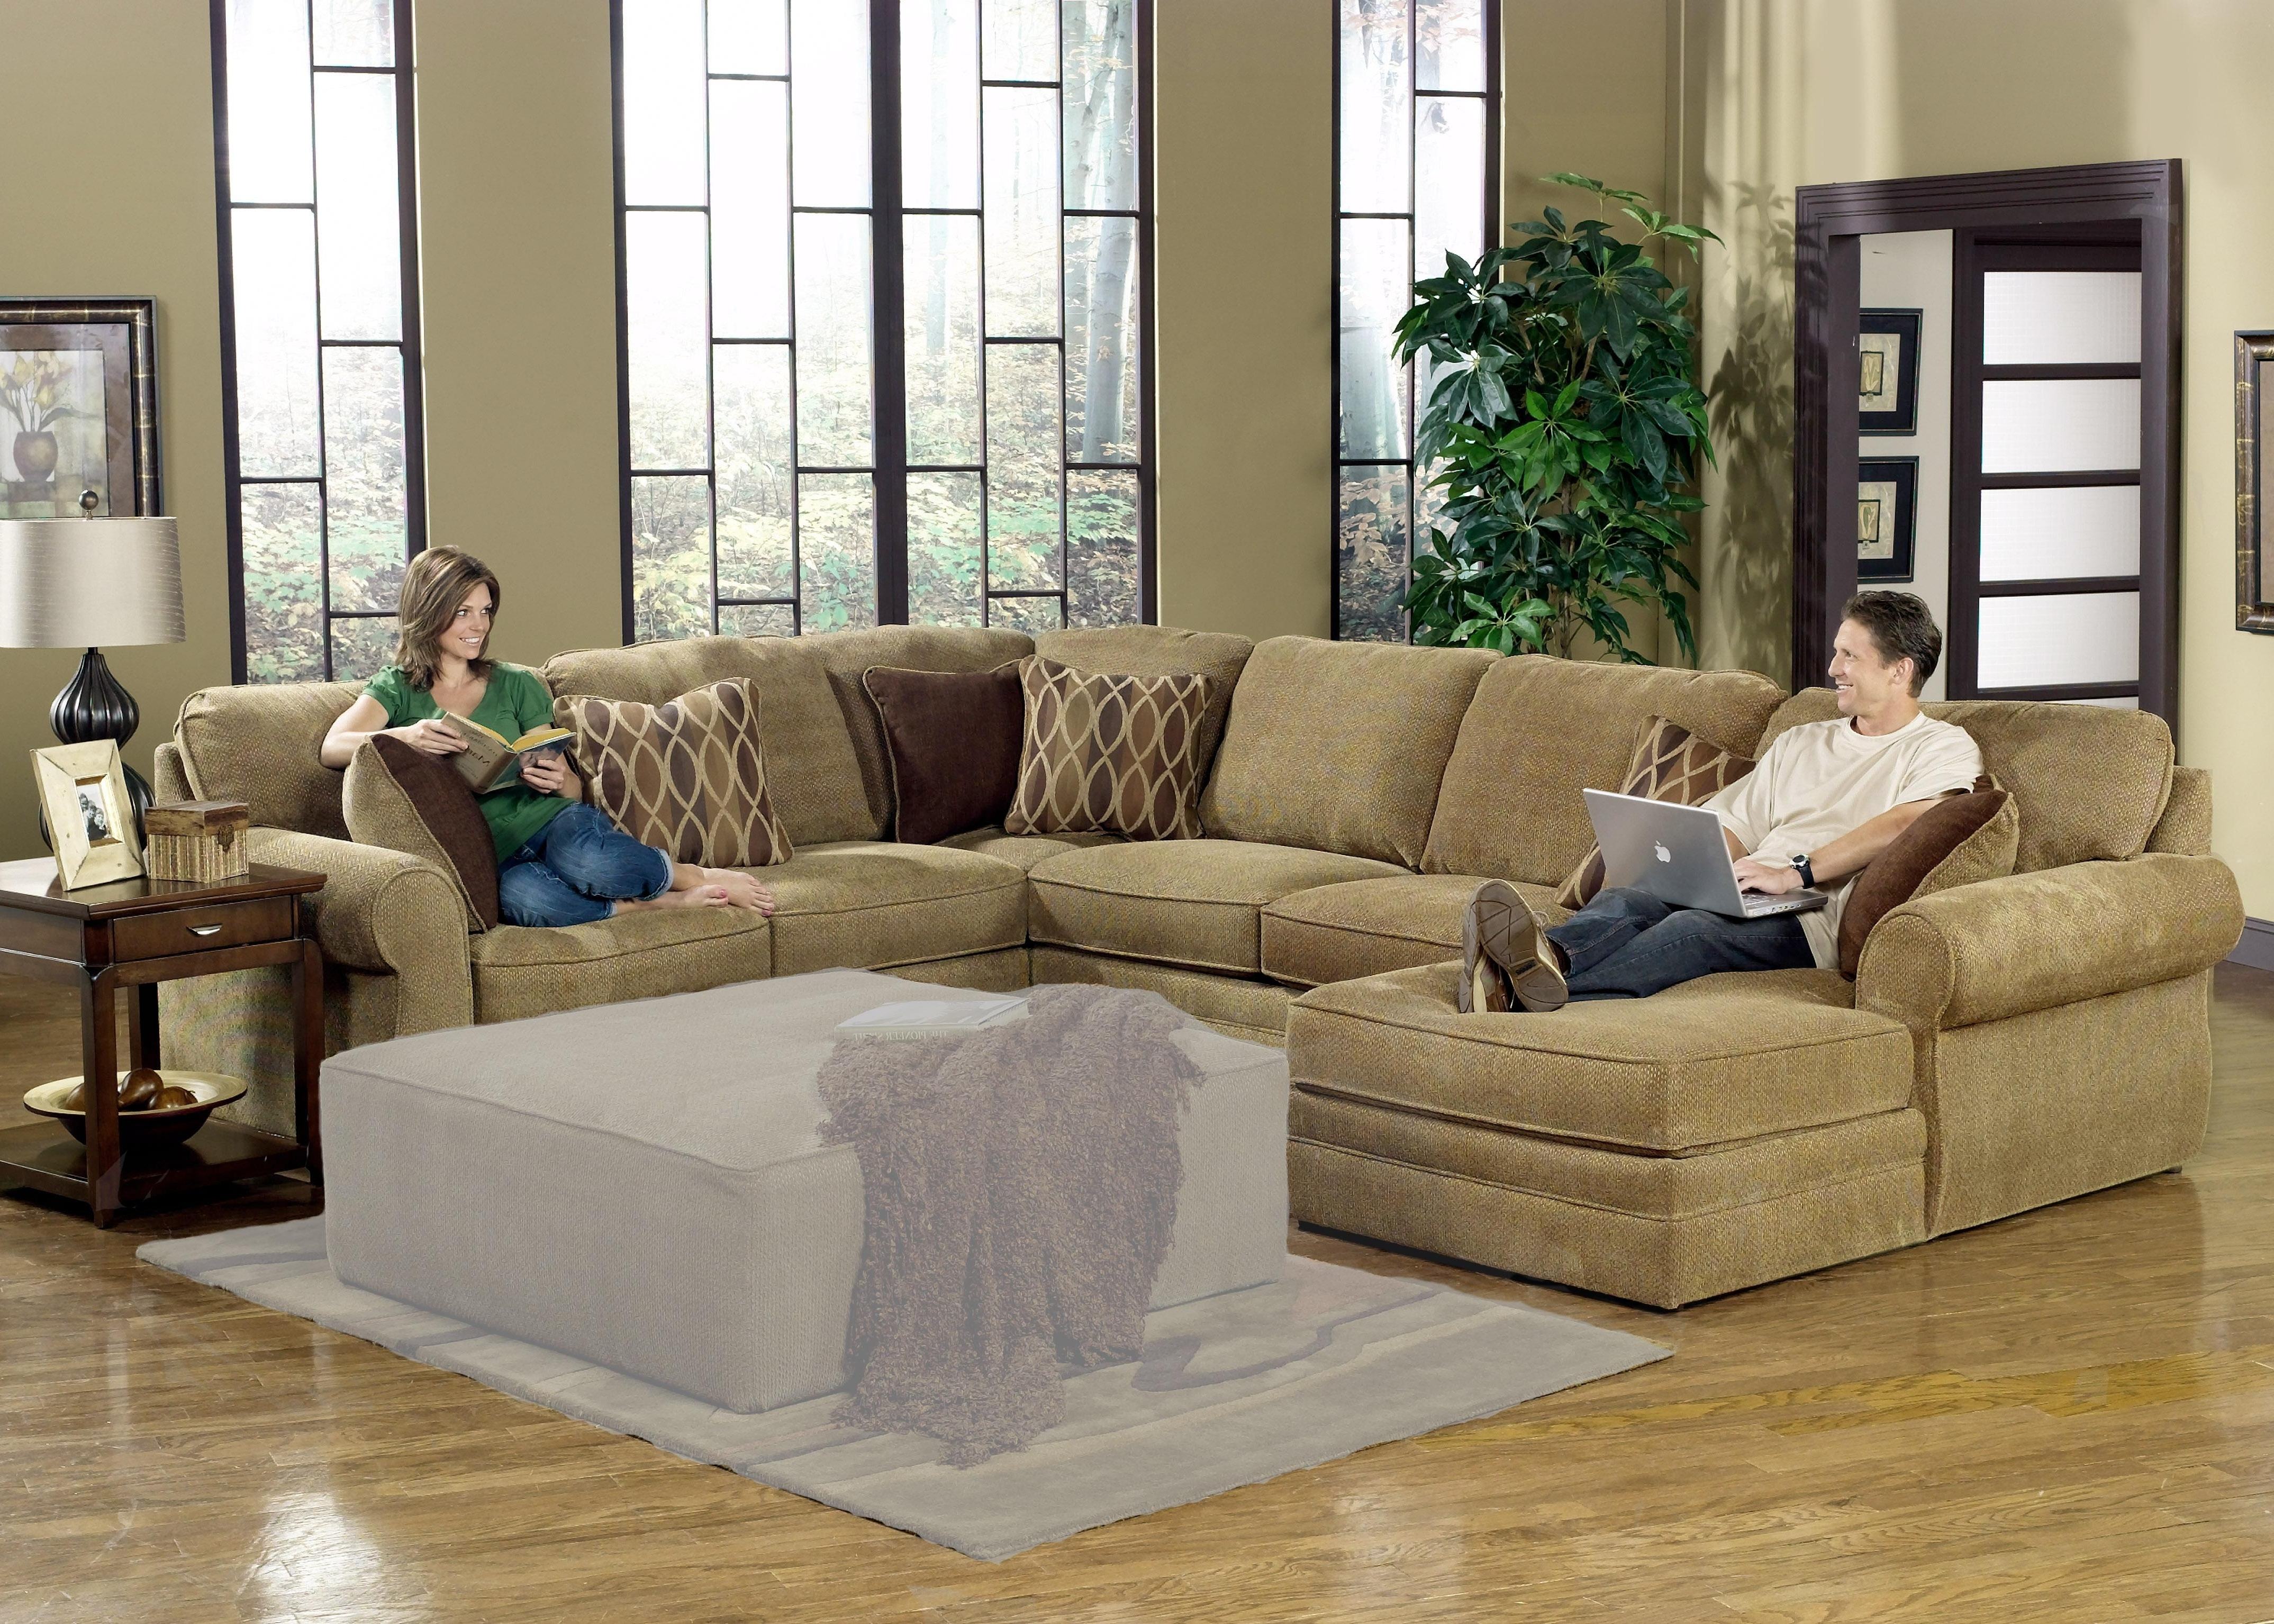 Preferred Sectional Sofas At Atlanta Intended For Huge Sectional Sofas – Tourdecarroll (View 10 of 15)